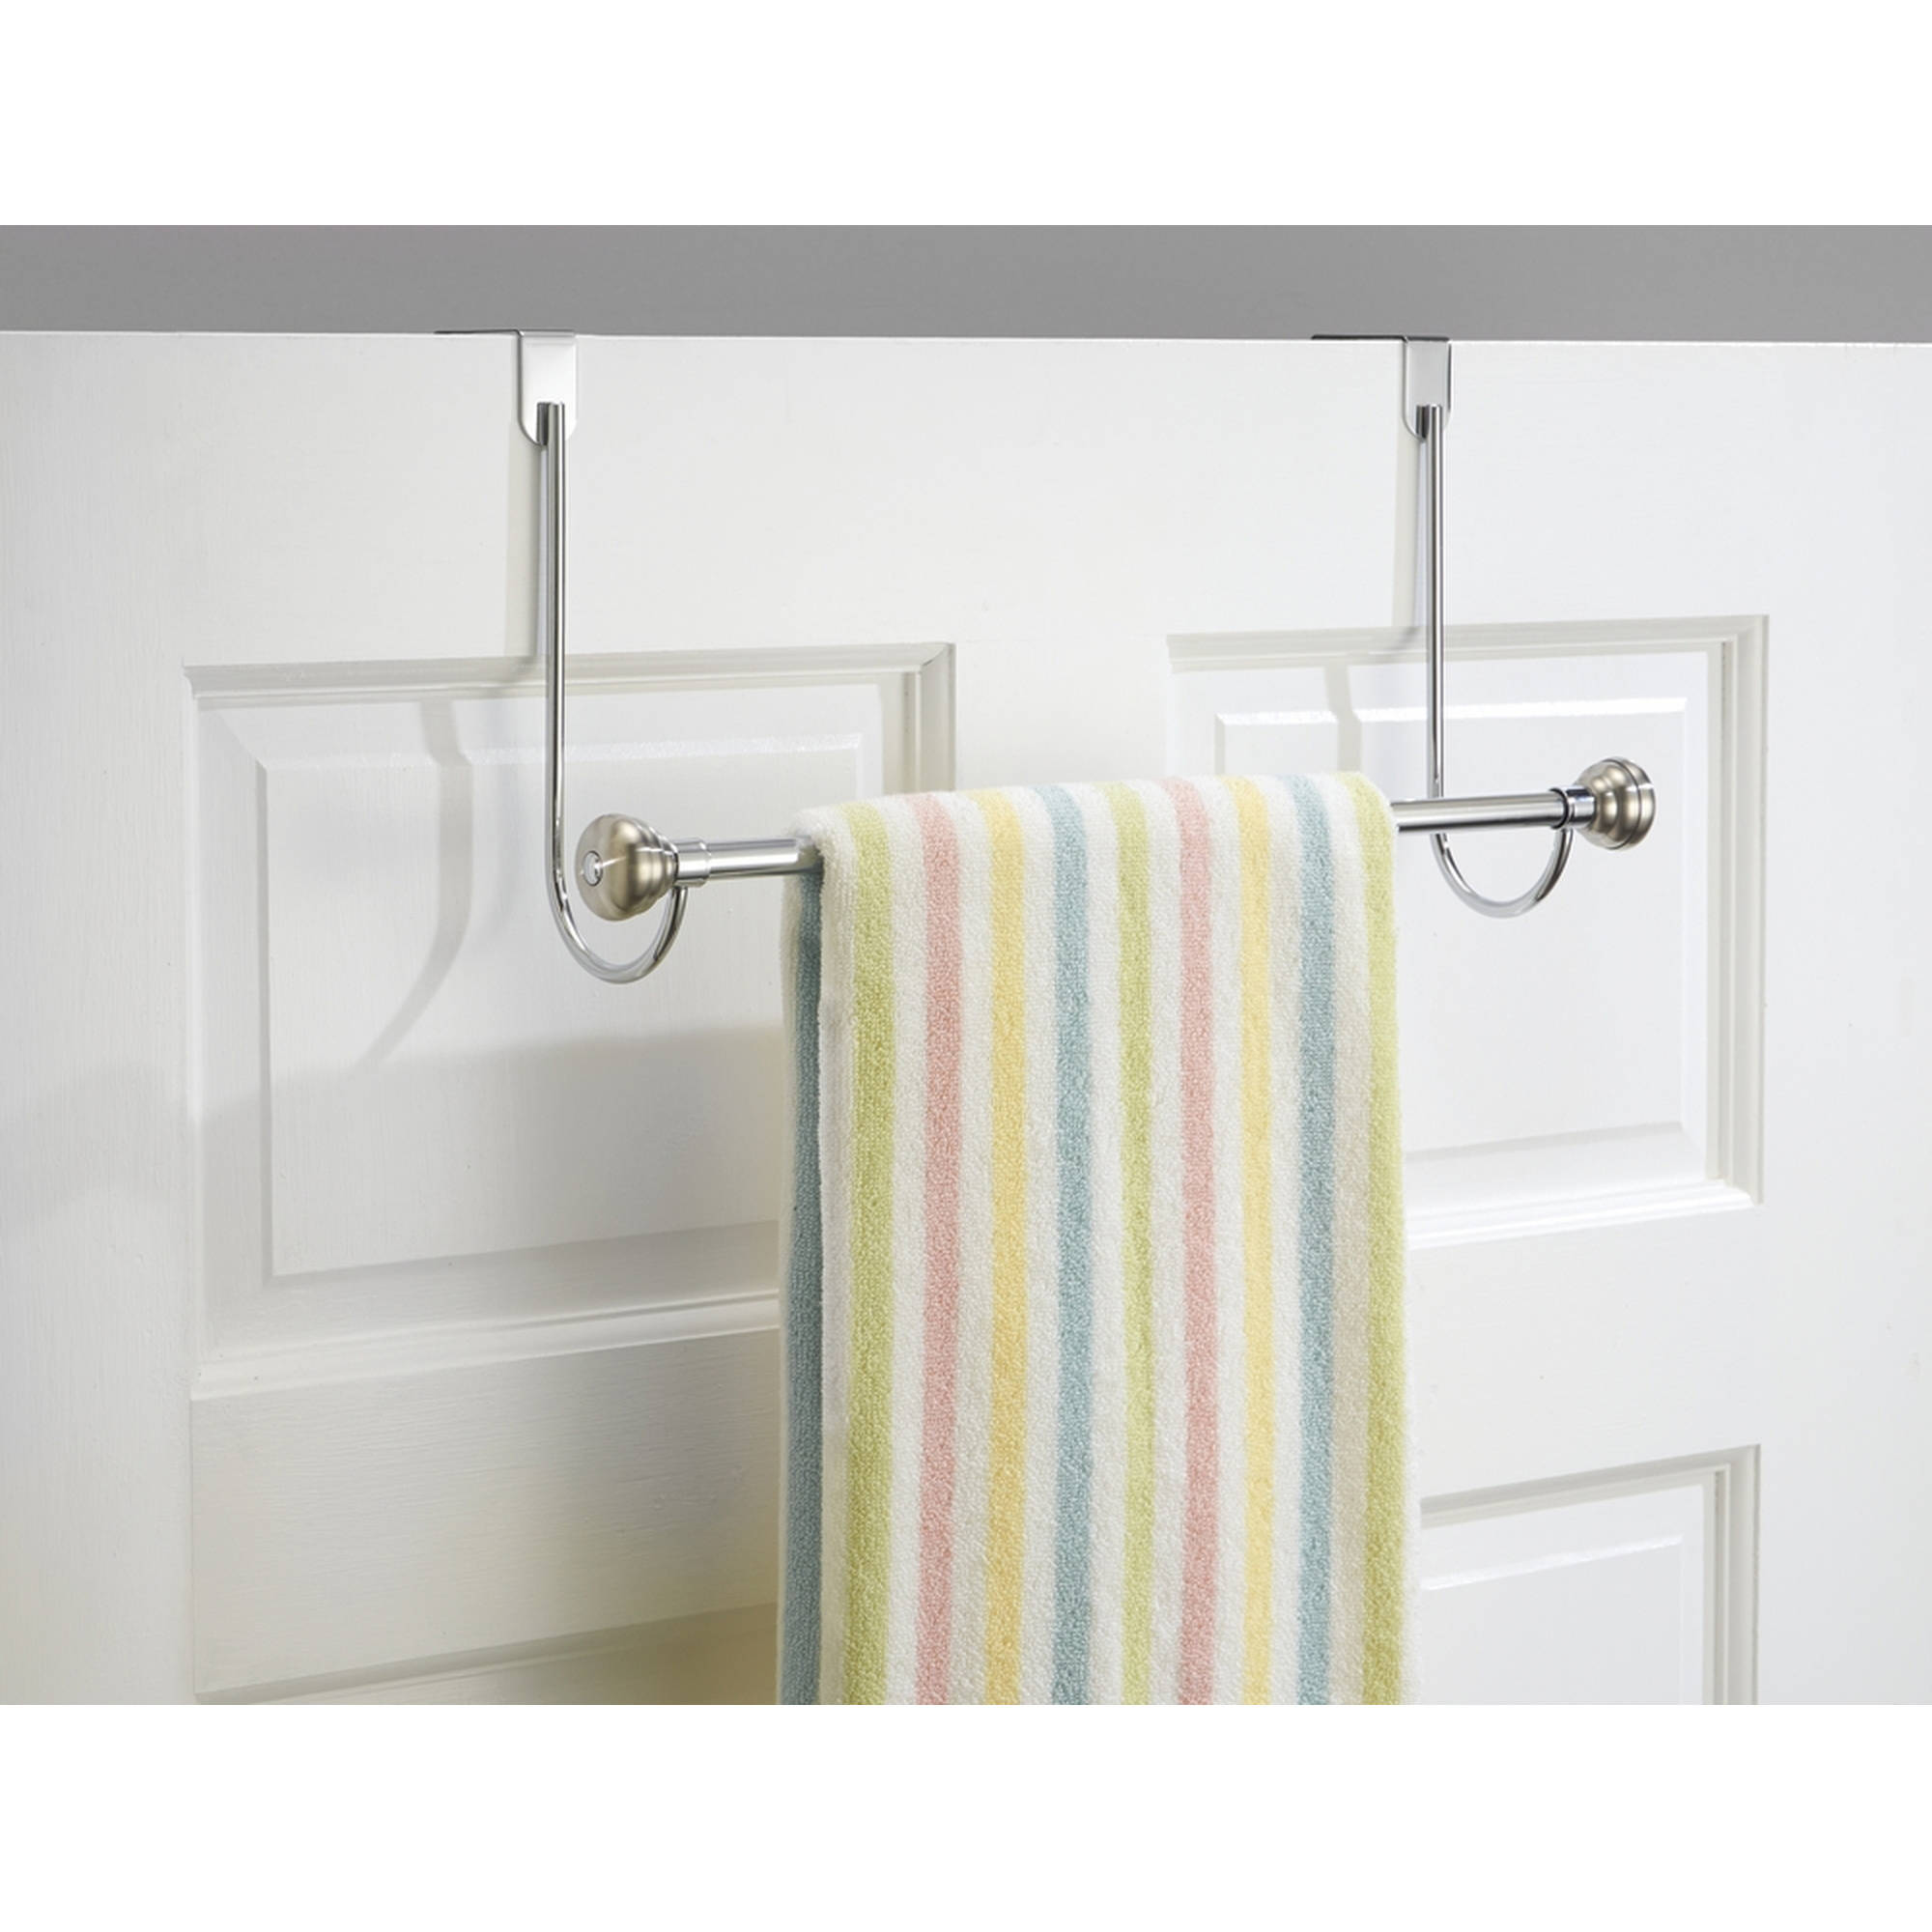 Attirant InterDesign York Over Shower Door Towel Rack Bar For Bathroom,  Chrome/Stainless